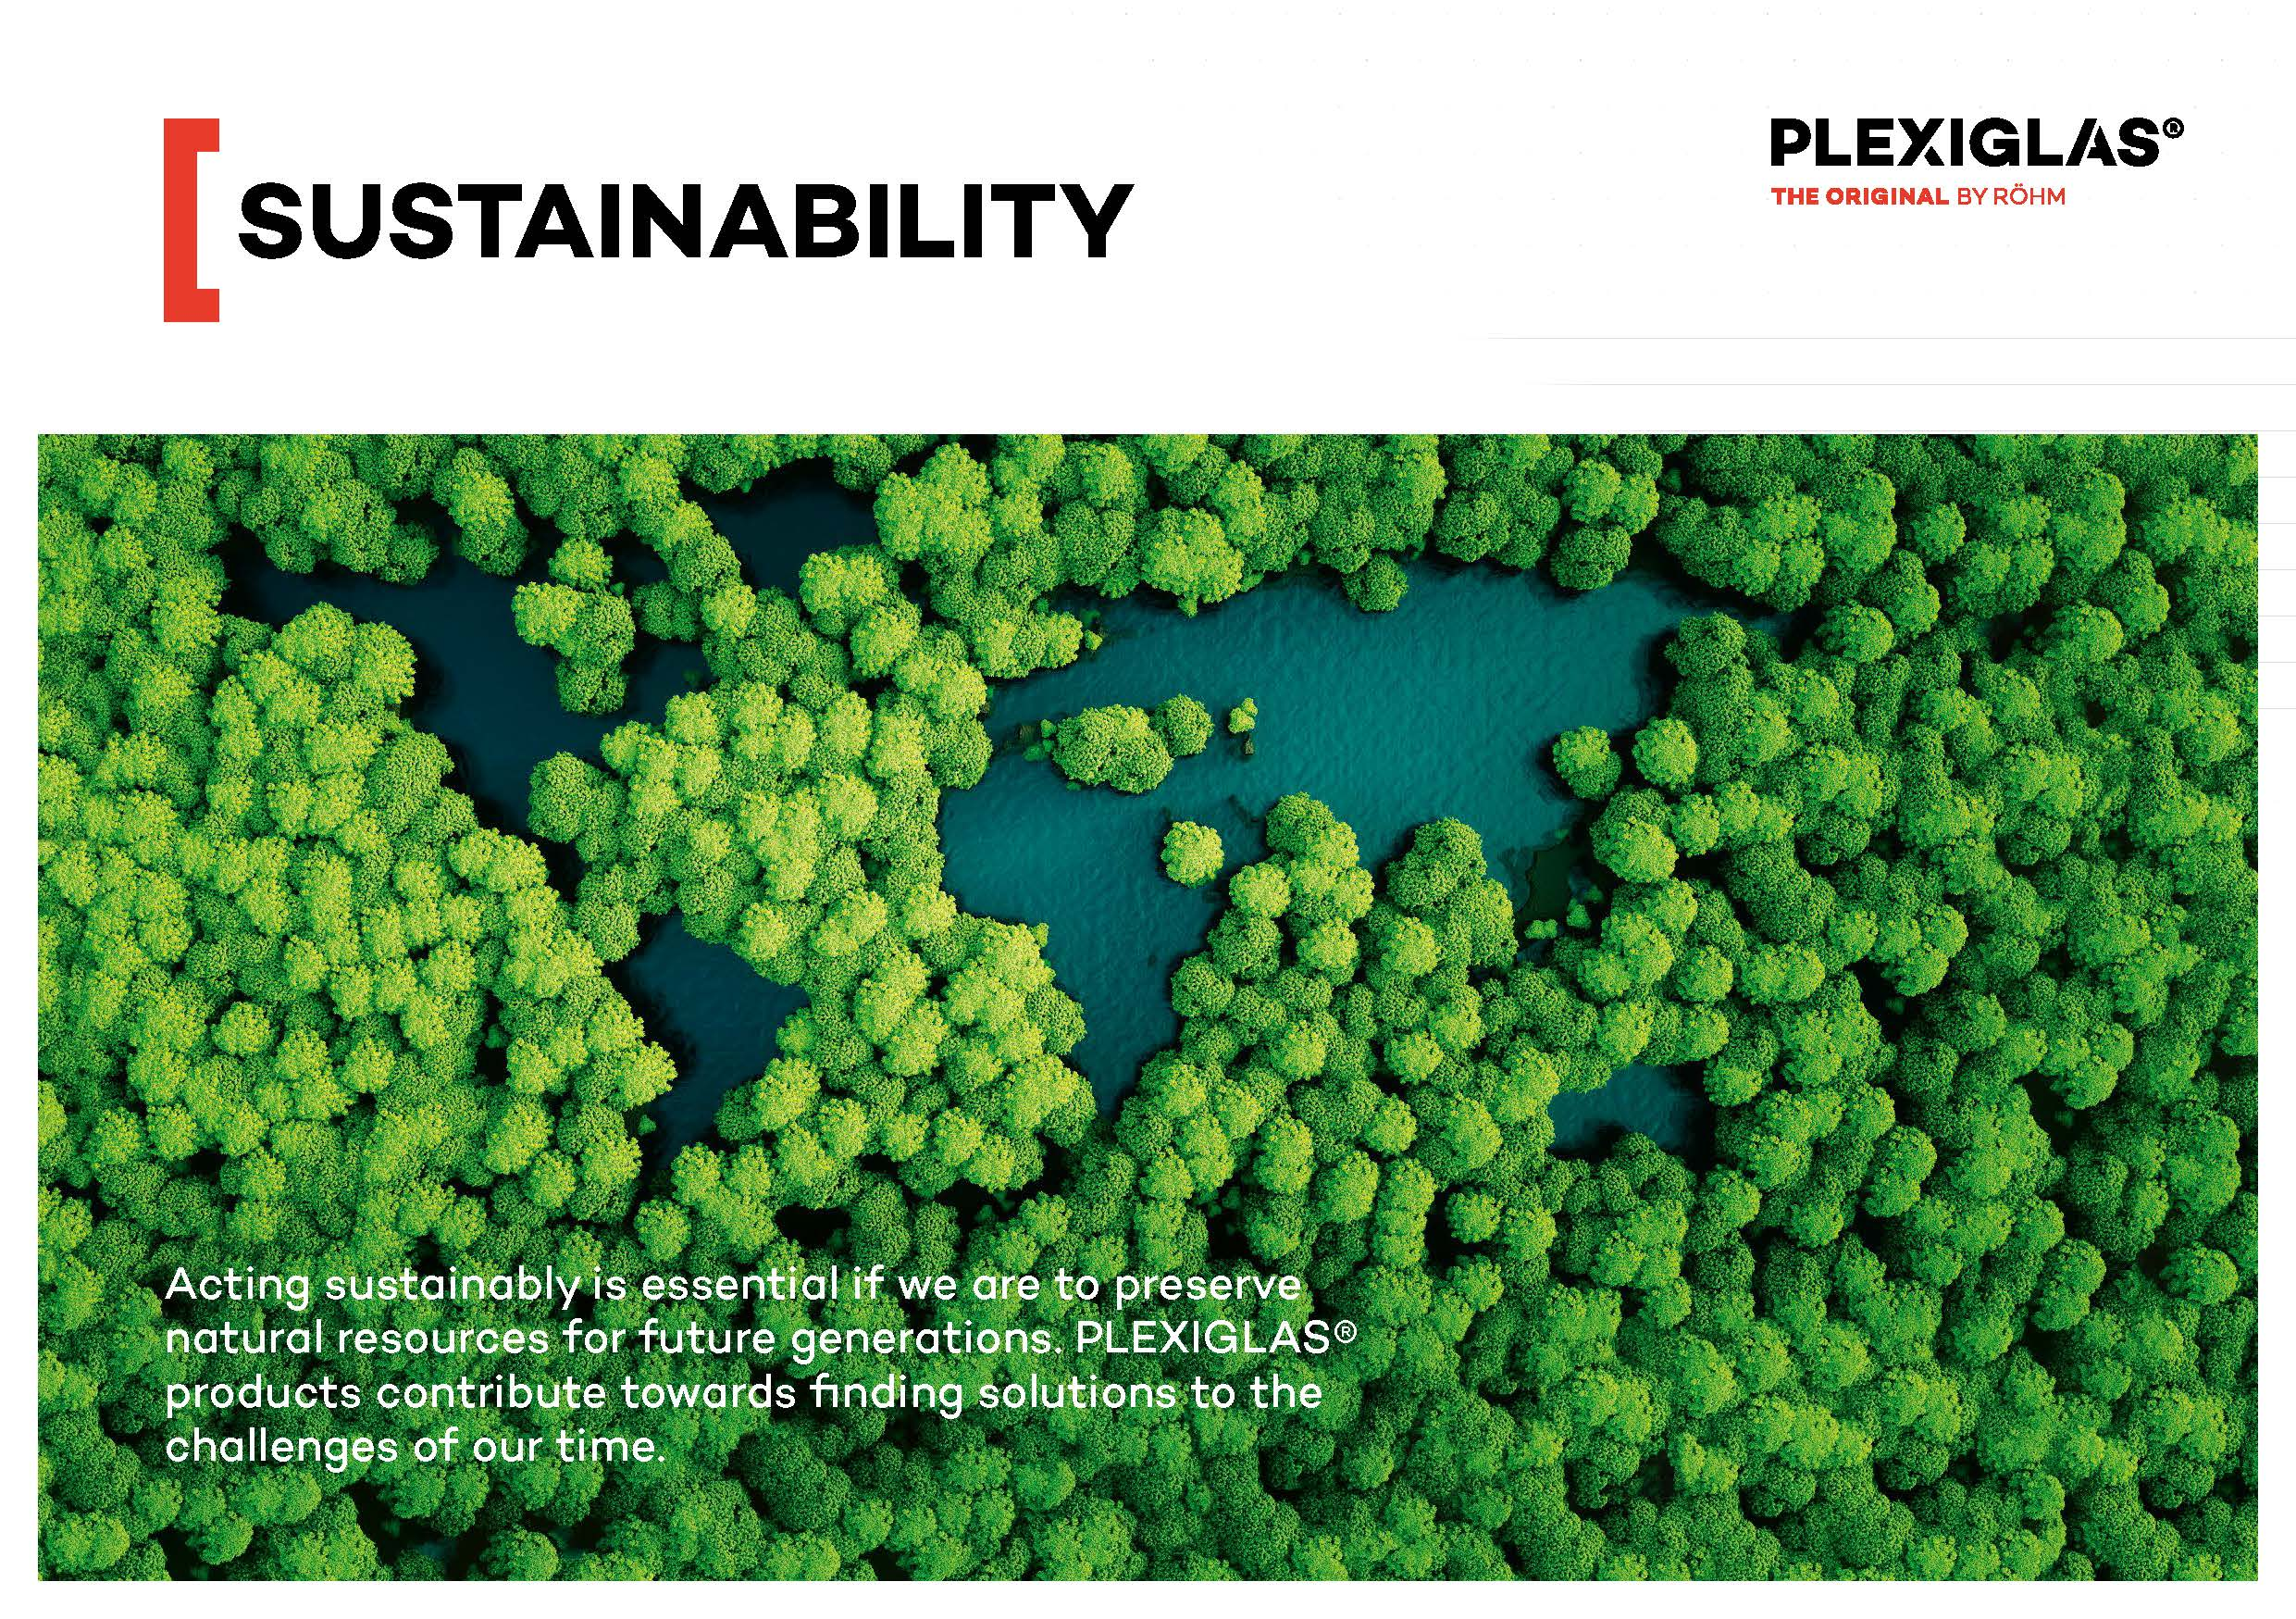 Afbeelding Cover PLEXIGLAS® Sujstainability